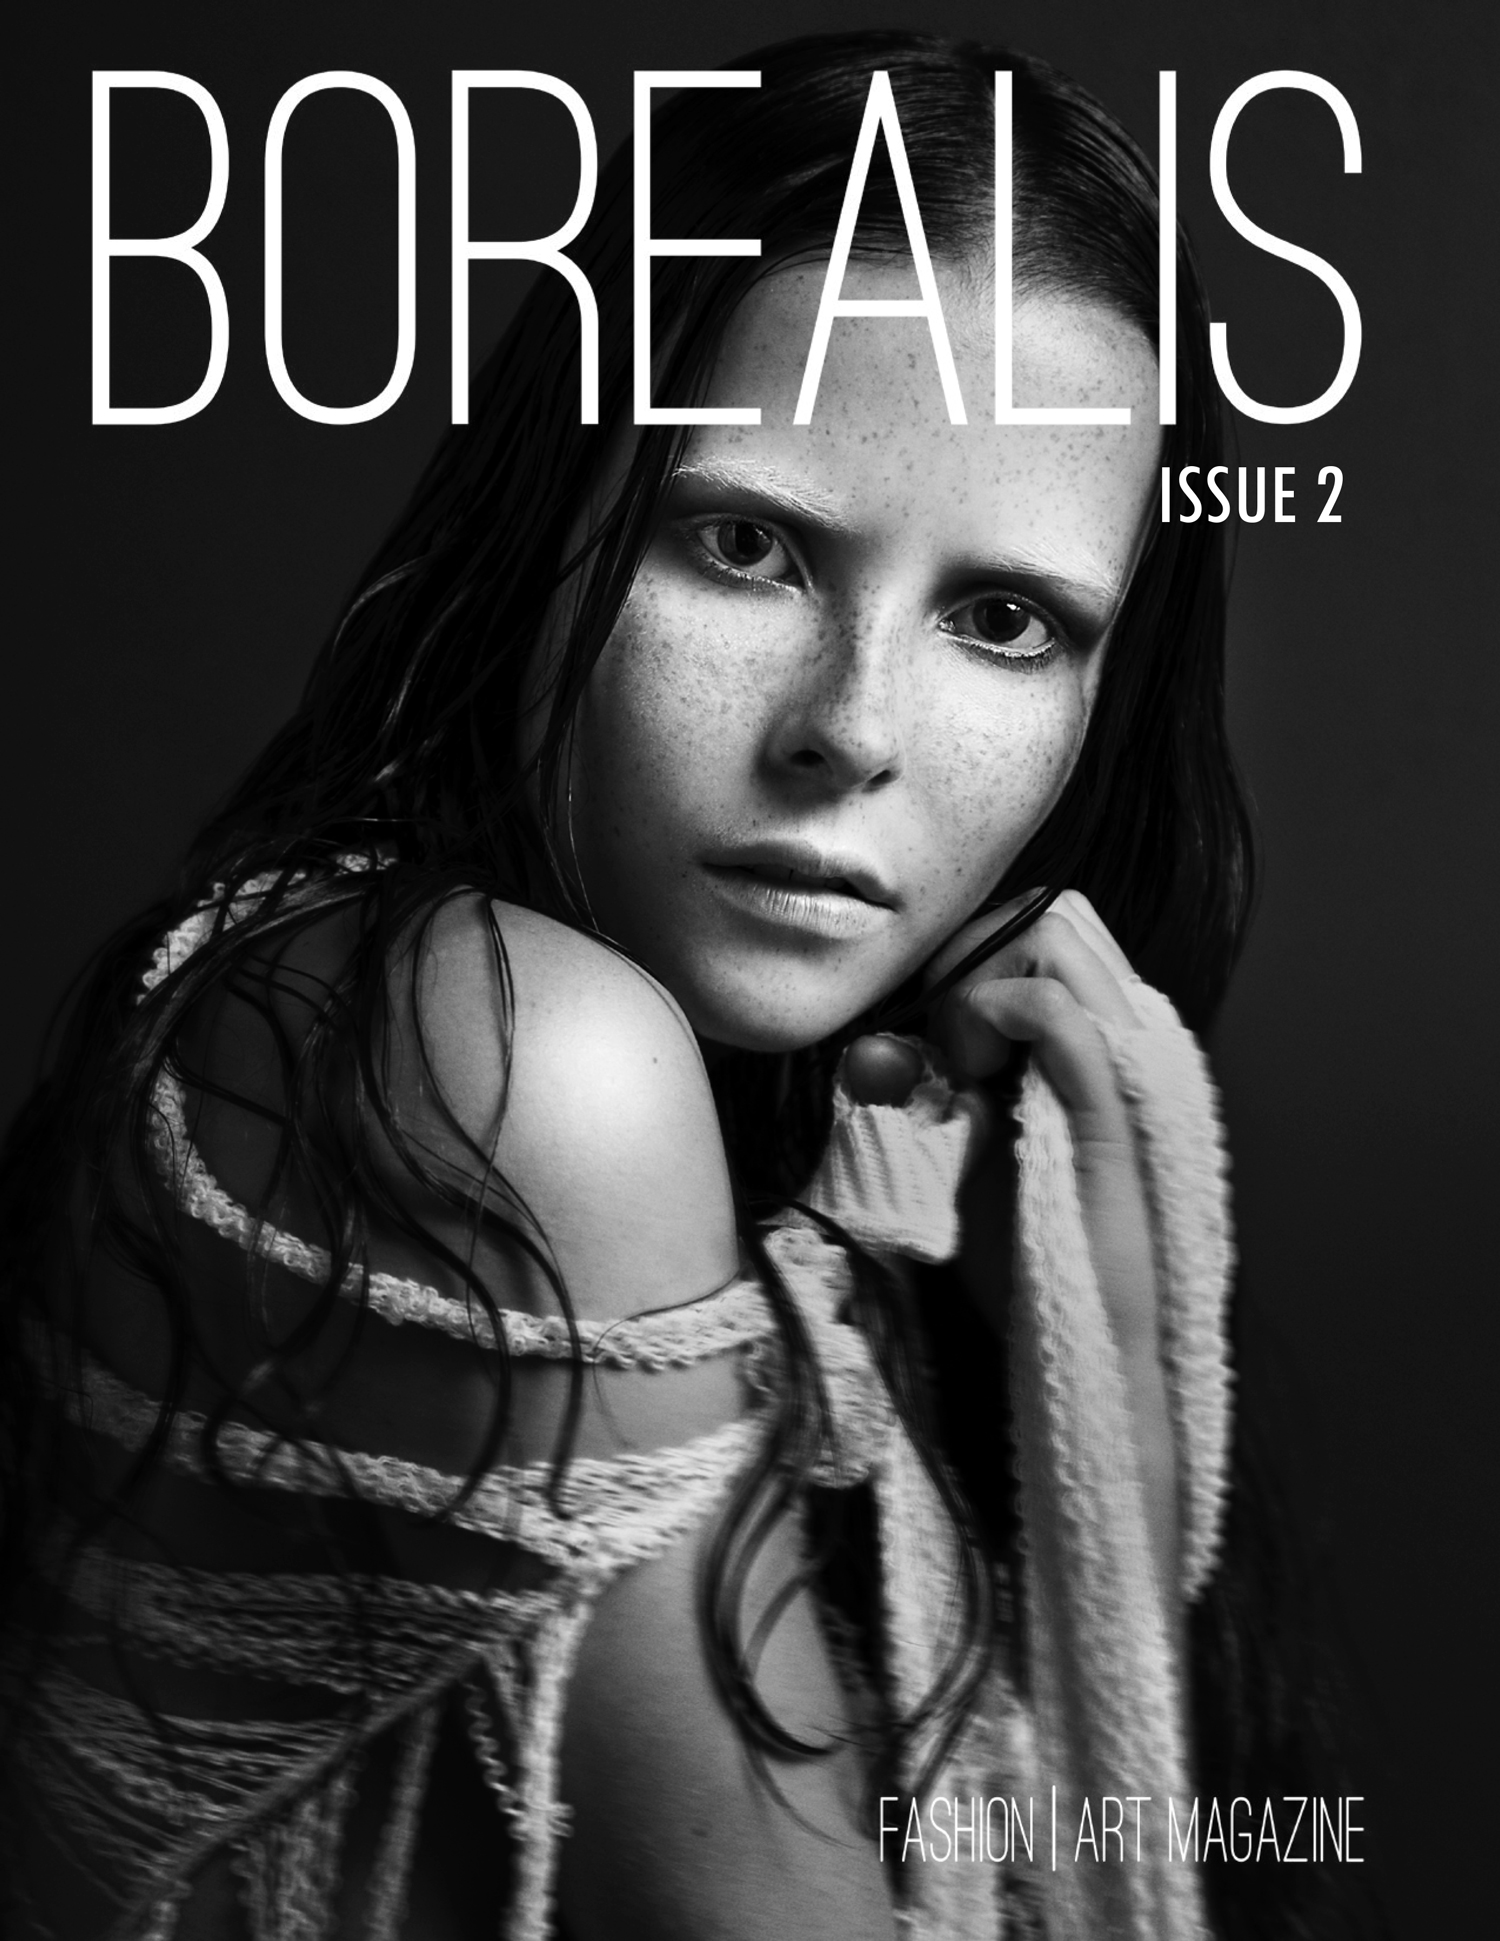 Borealis-Mag_ISSUE-2_Feb-2015_Spread-1_ChanceMcLarenPhotographer.jpg